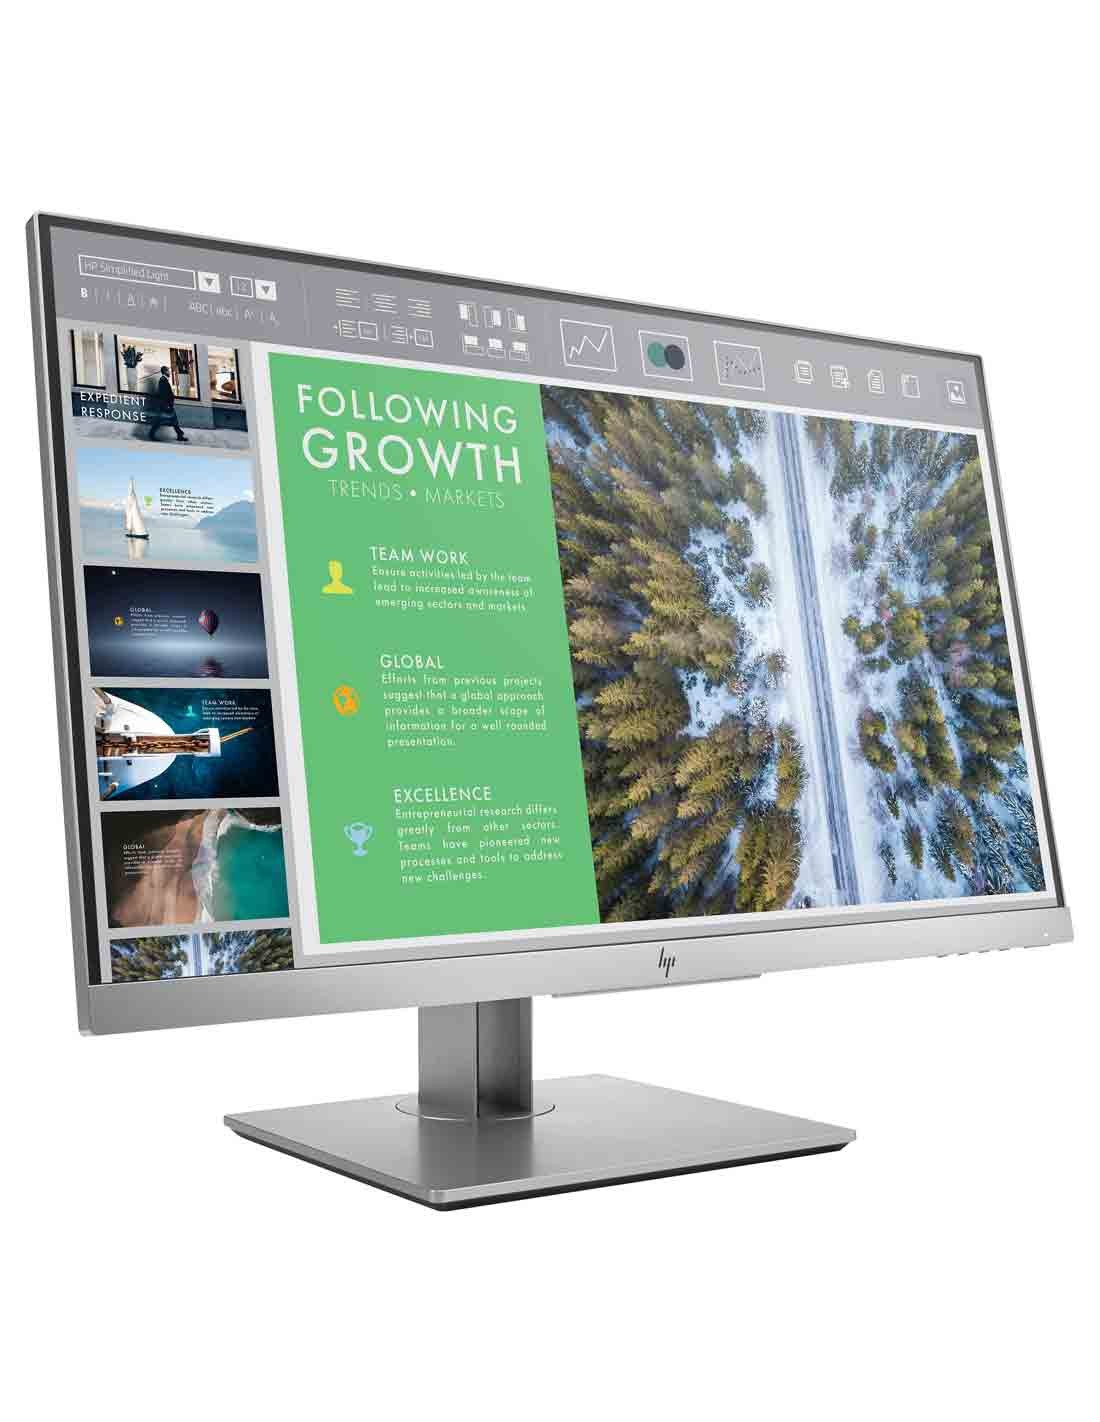 HP EliteDisplay E243 23.8-inch Monitor images and photos